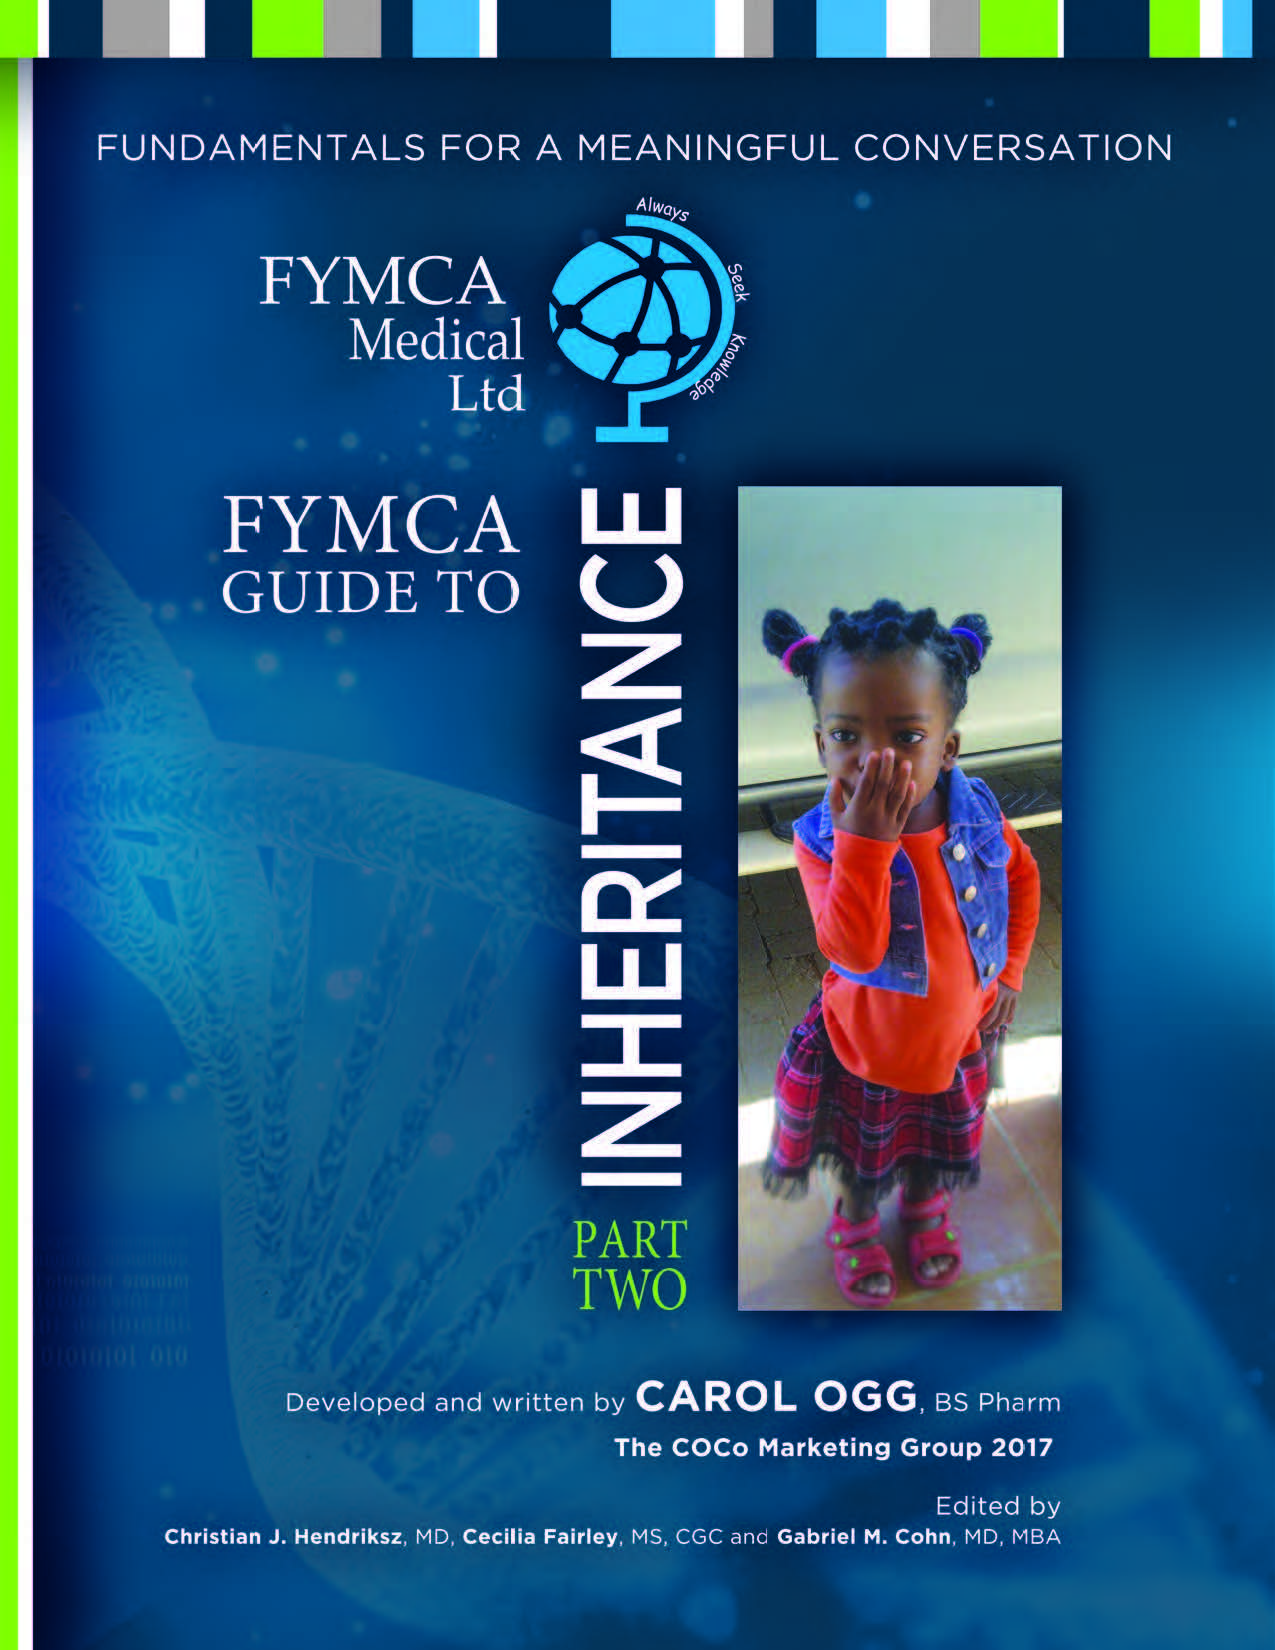 FYMCA Guide to Inheritance E-Book